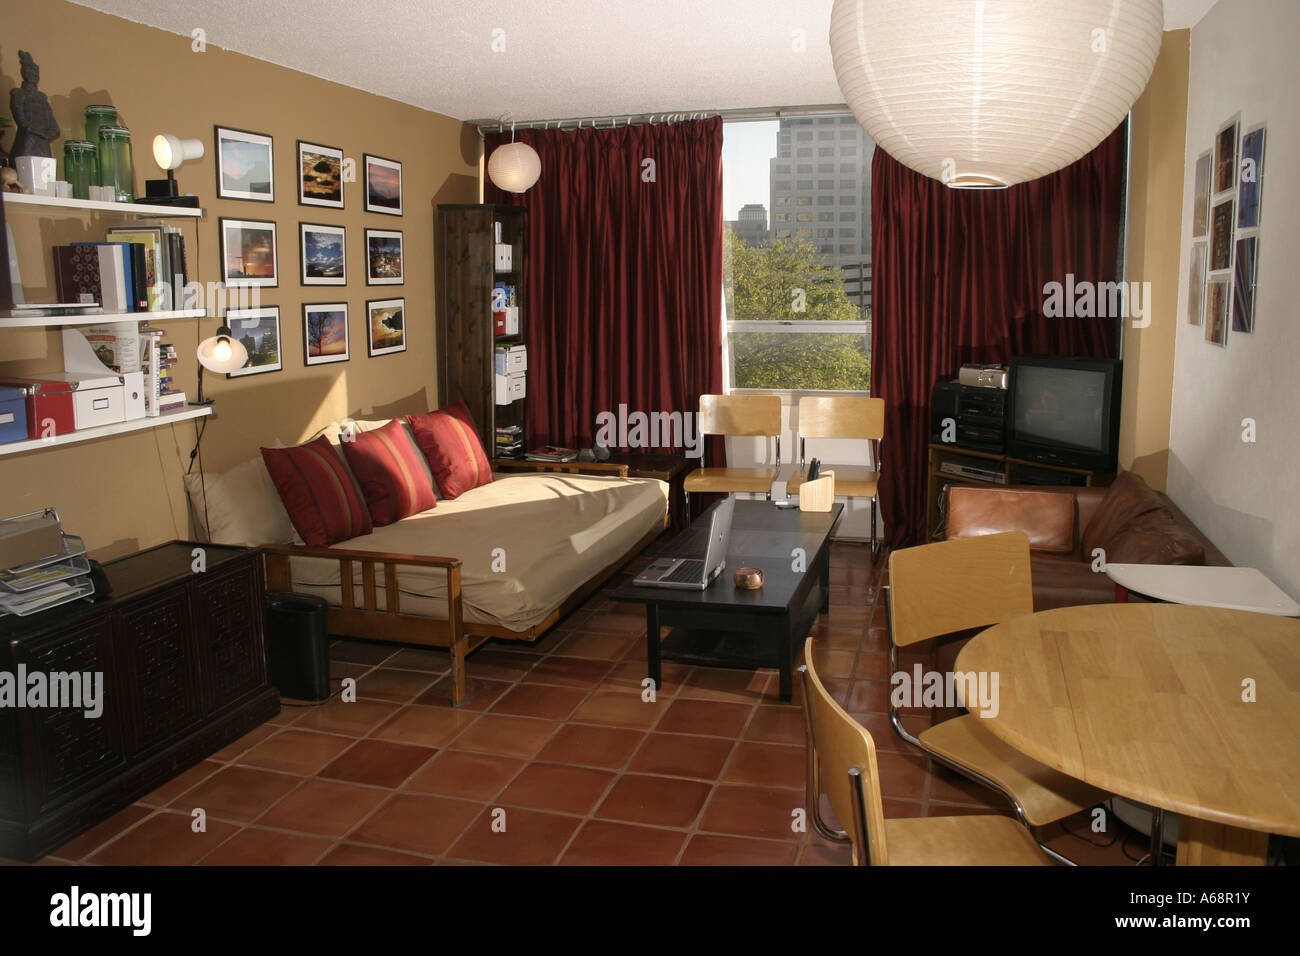 A modern Living room decorated with Mexican tiles Stock Photo ...